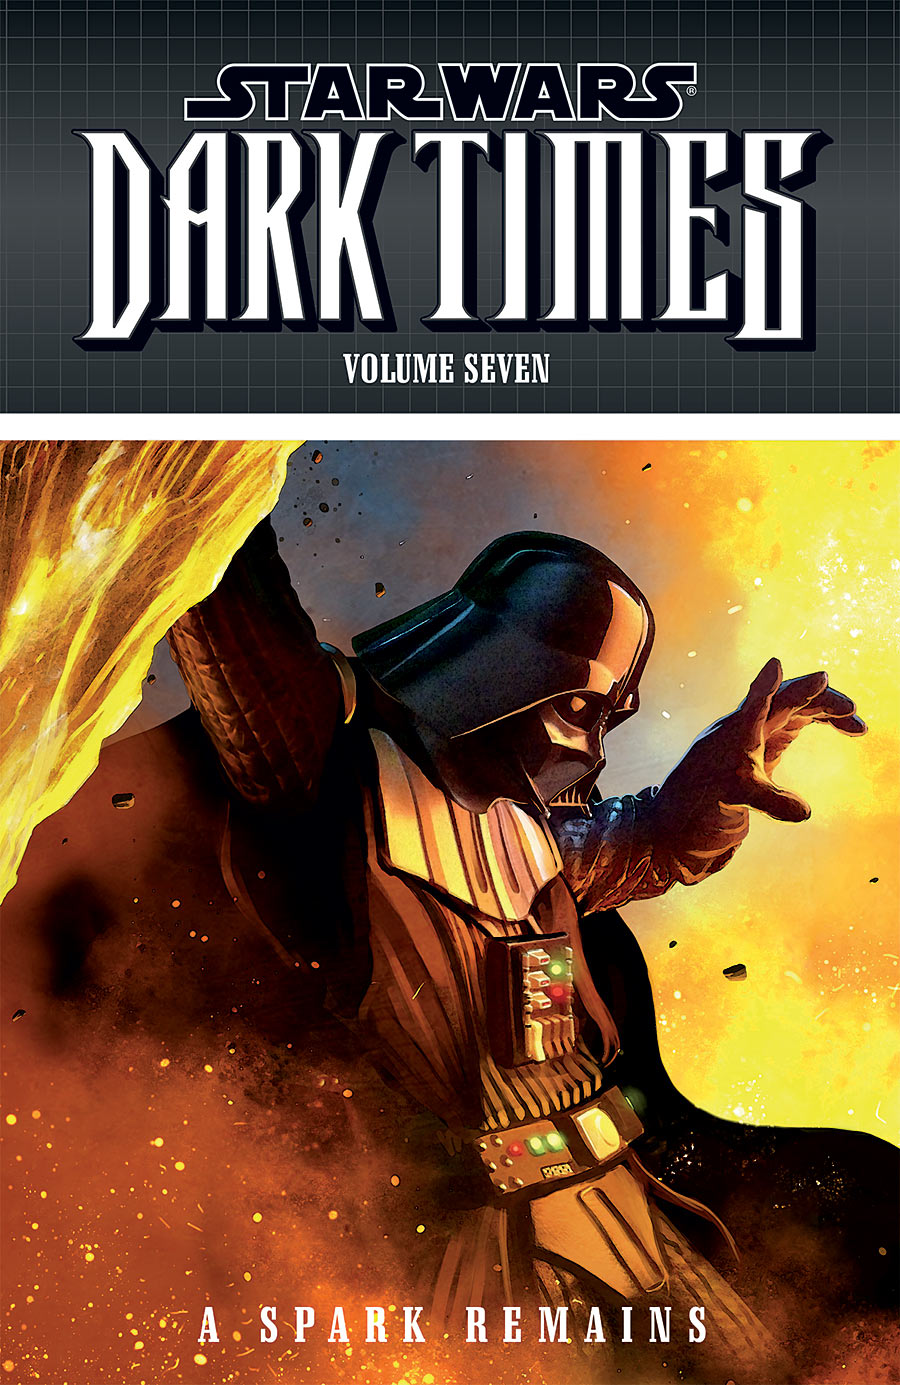 Star_wars_dark_times_vol_7.jpg